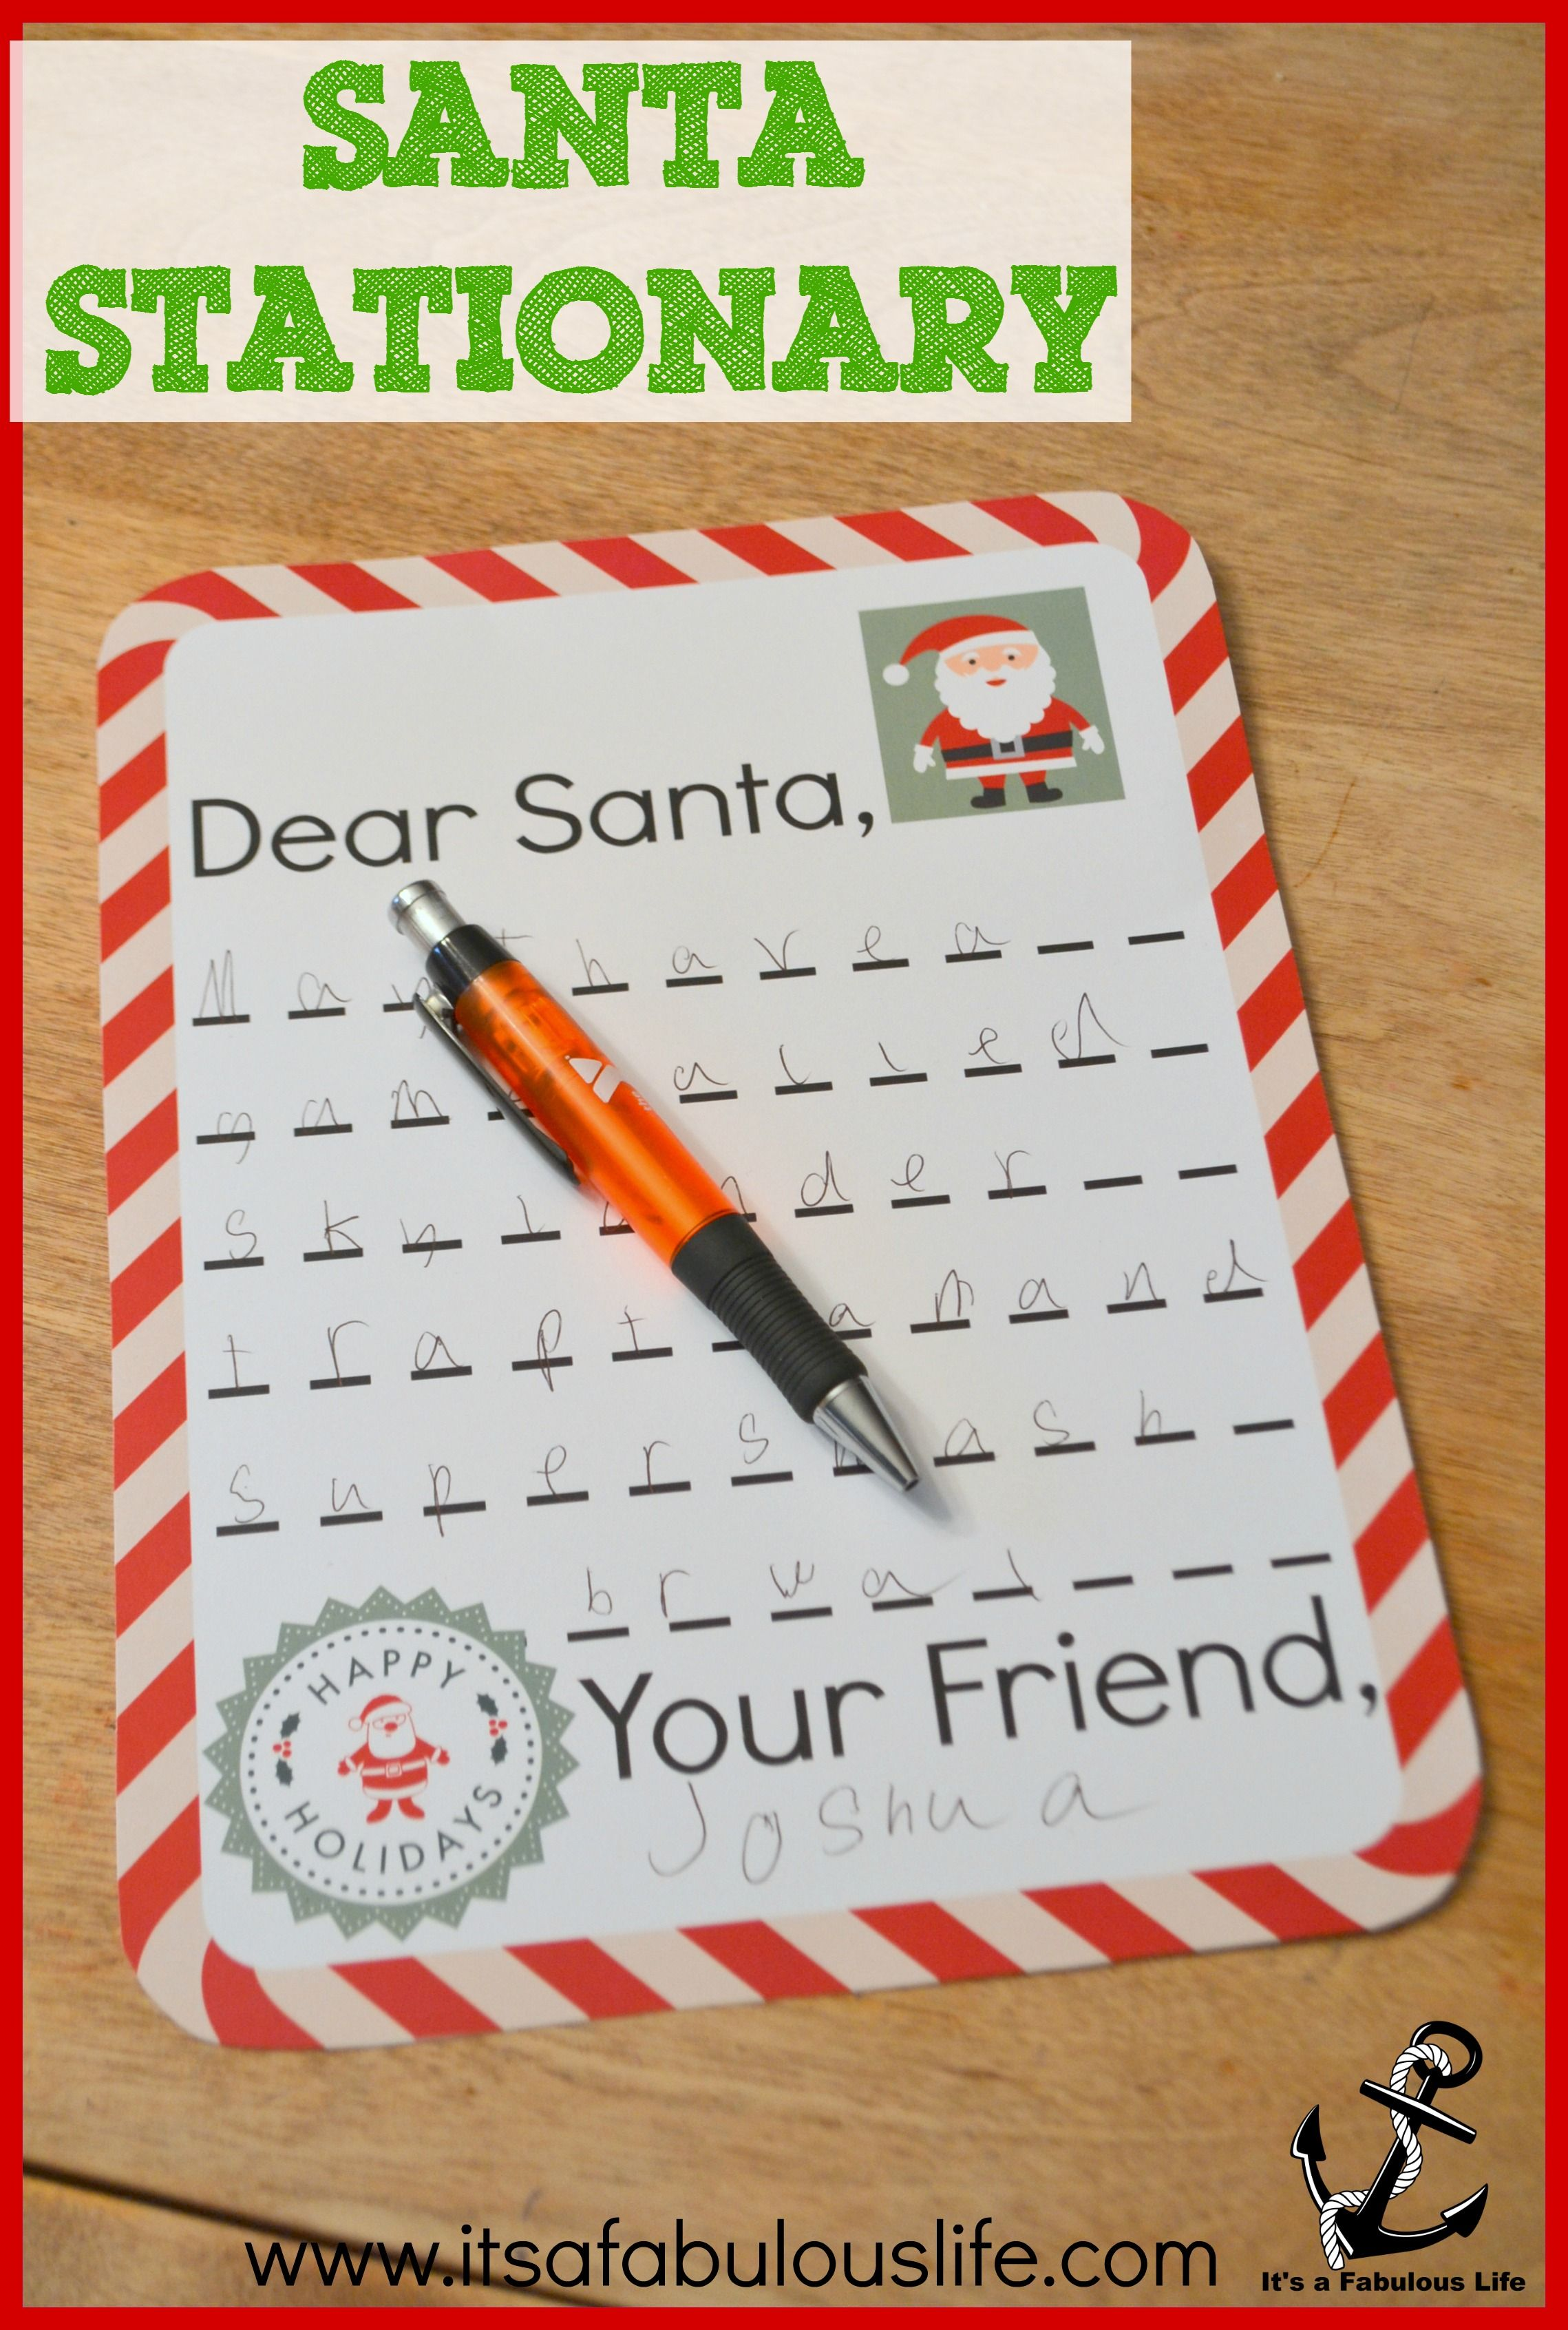 Where To Send Letters To Santa Get A Response It S A Fabulous Life Santa Letter Free Letters From Santa Holiday Lessons